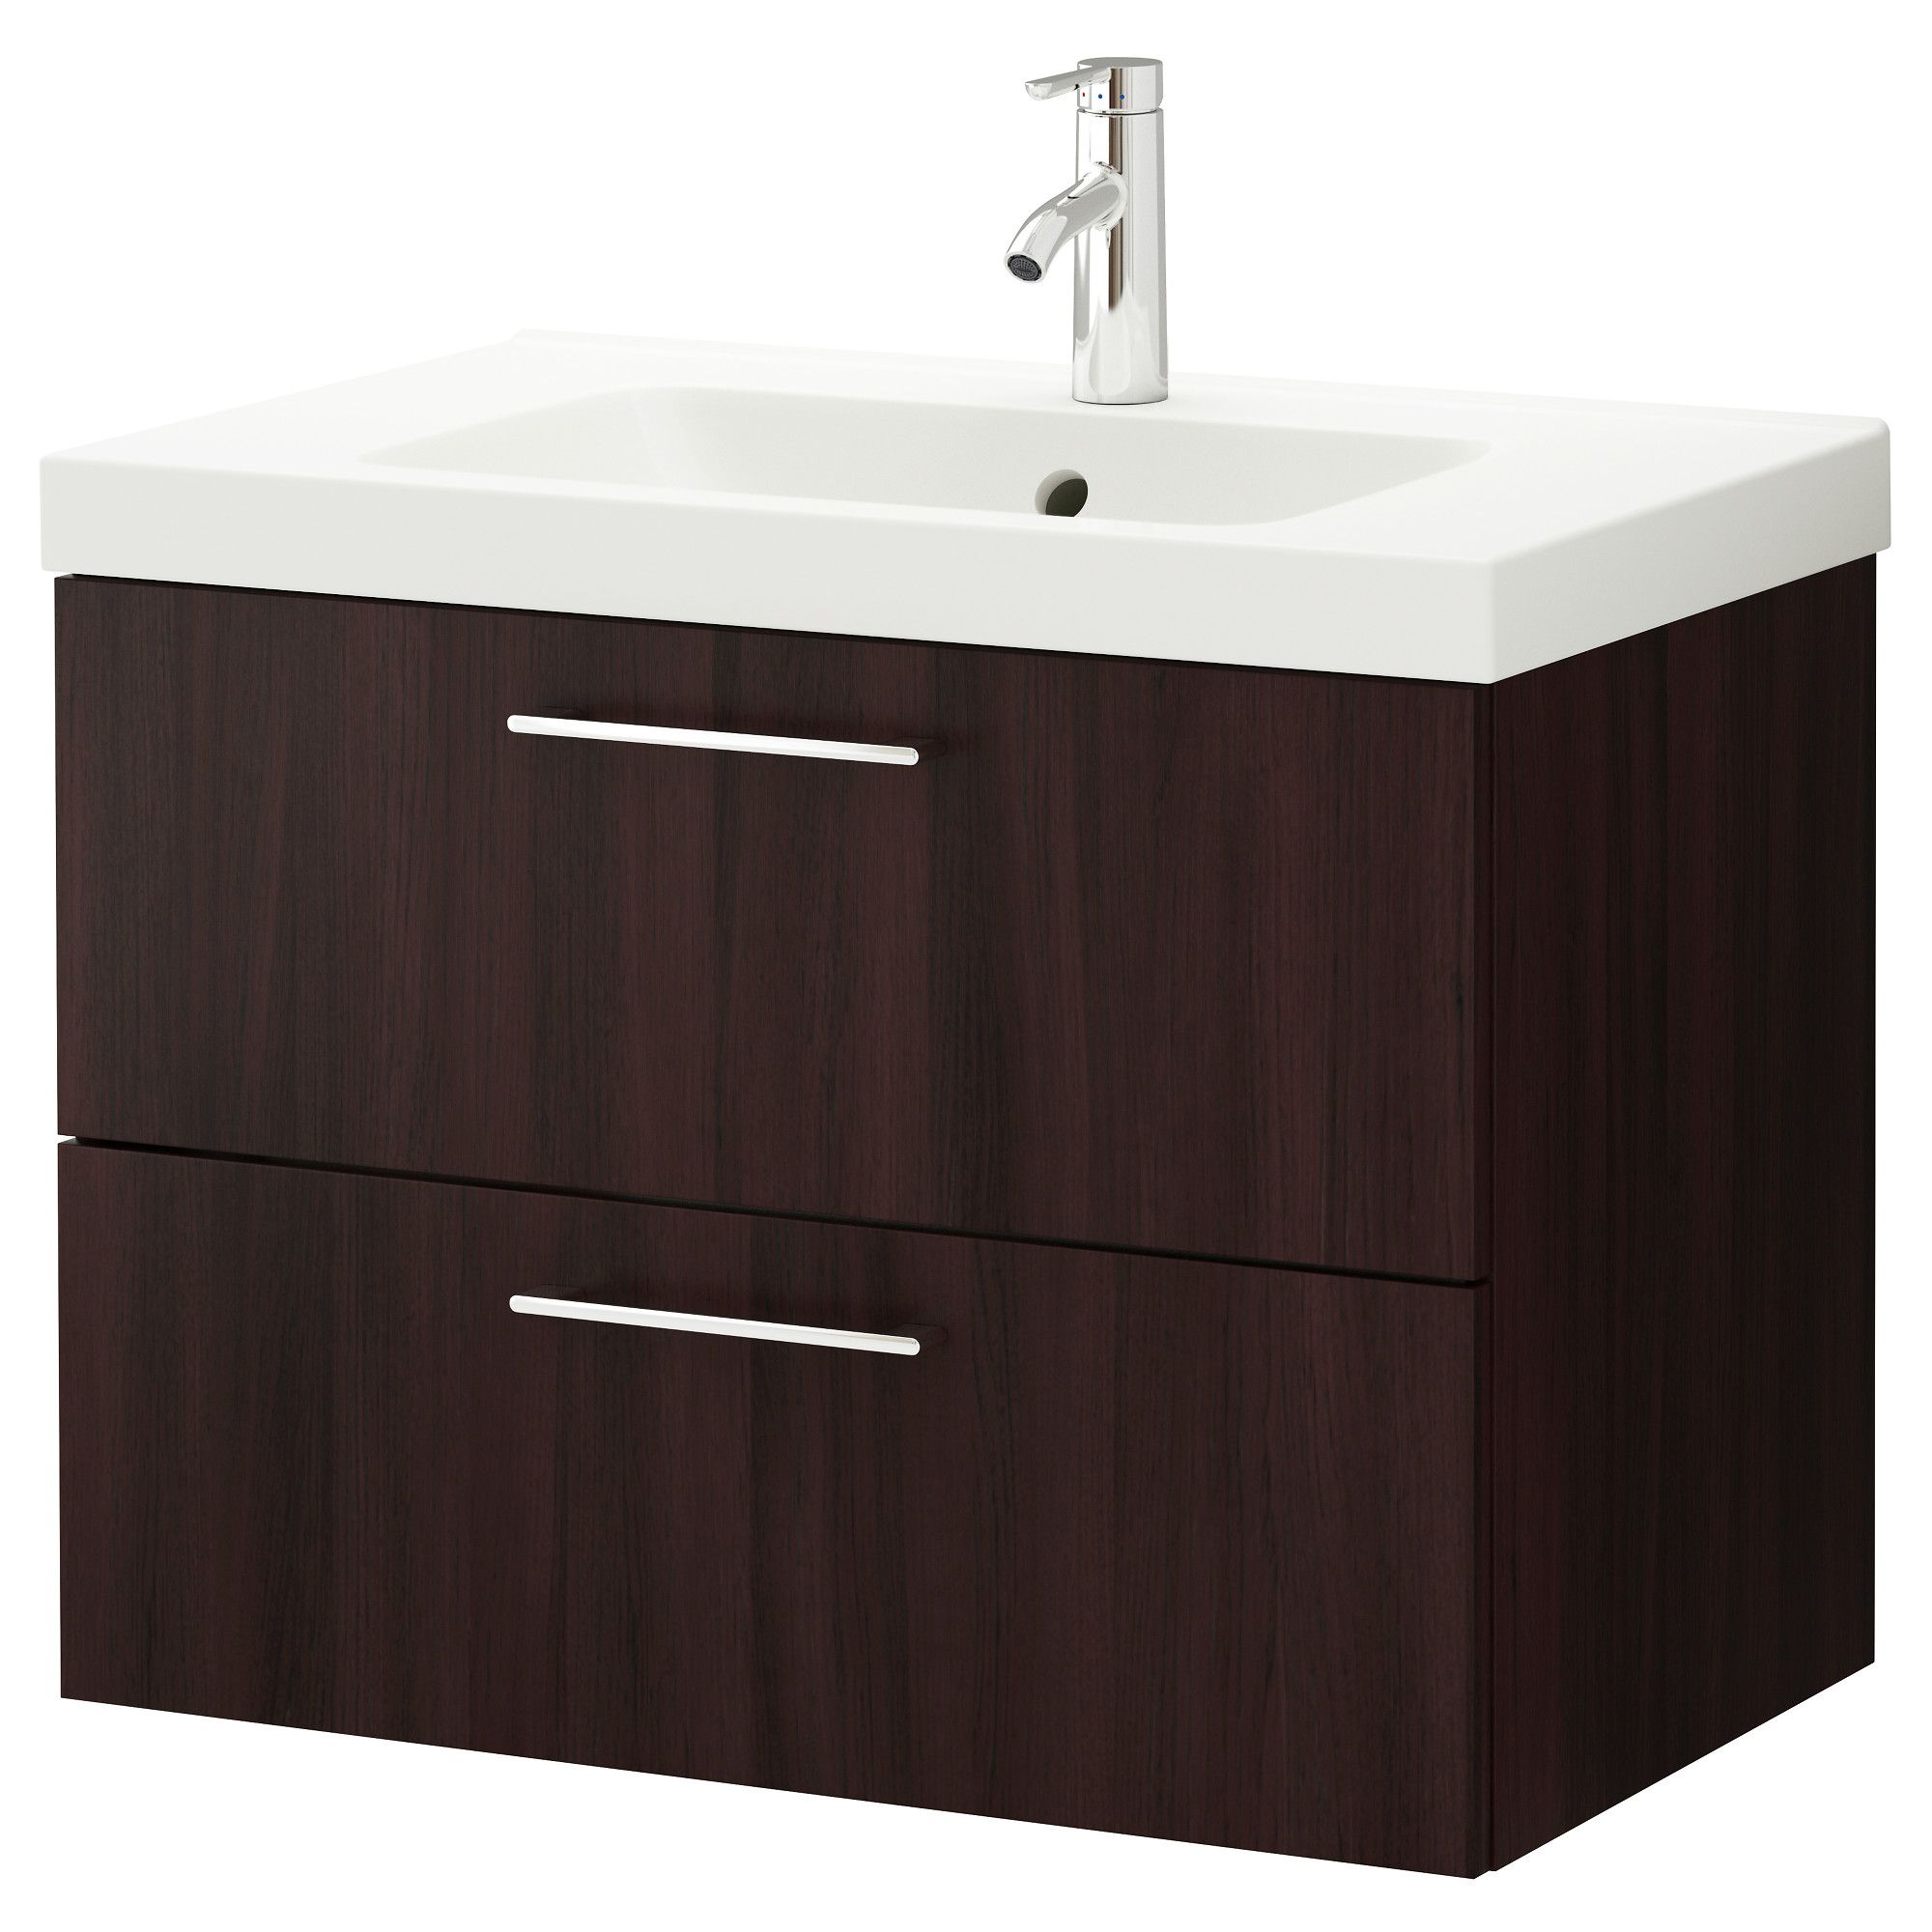 IKEA GODMORGON ODENSVIK Sink cabinet with 2 drawers black